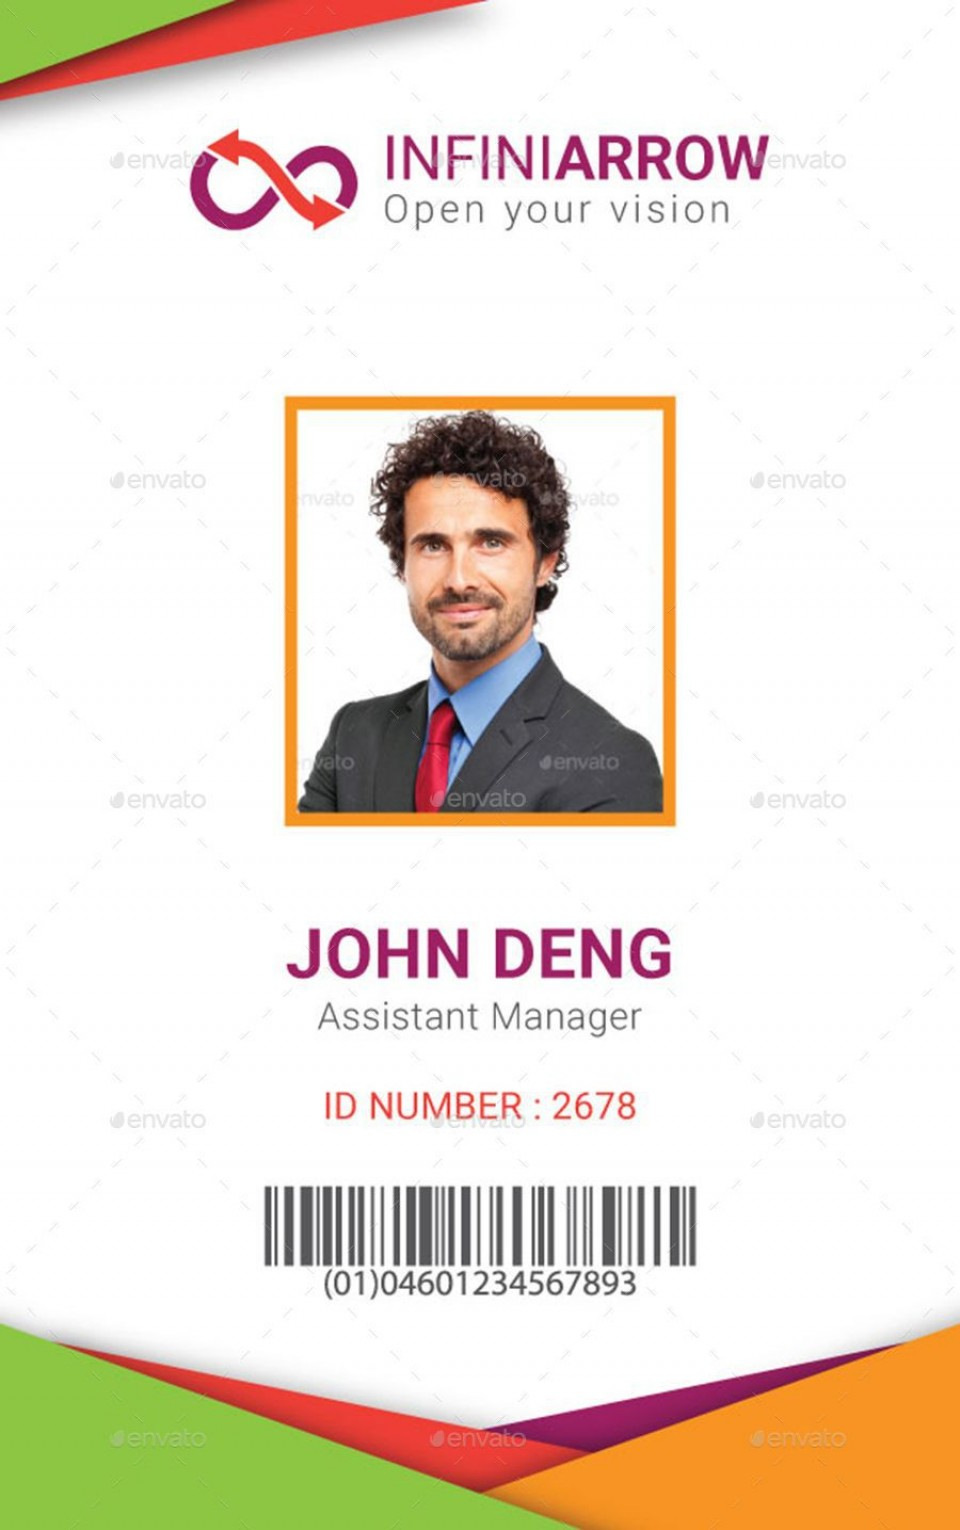 005 Amazing Id Badge Template Photoshop Example  Employee960